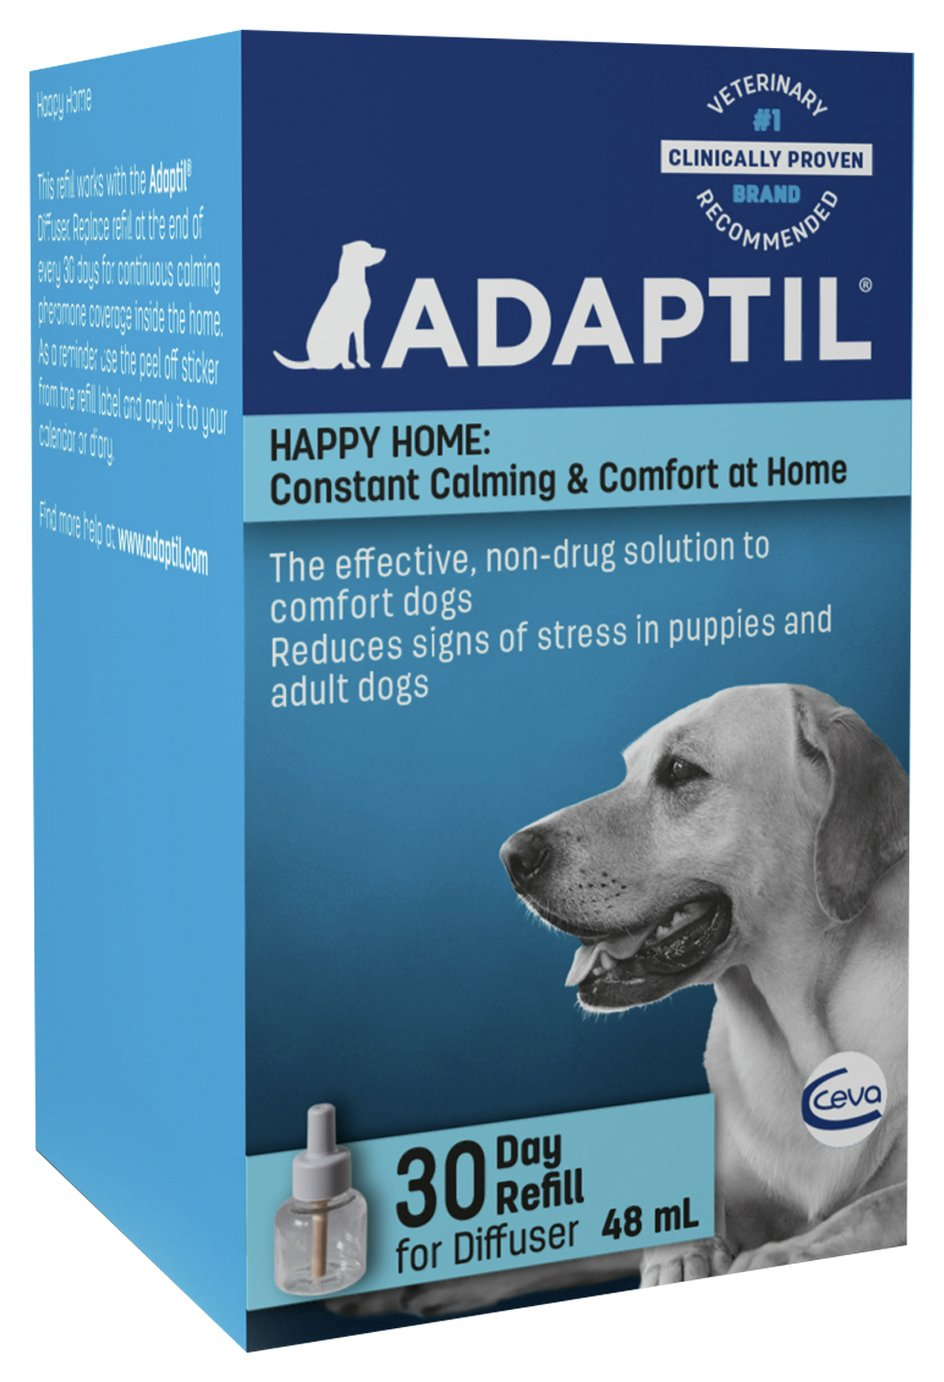 Image of Adaptil 30 Day Refill Pack